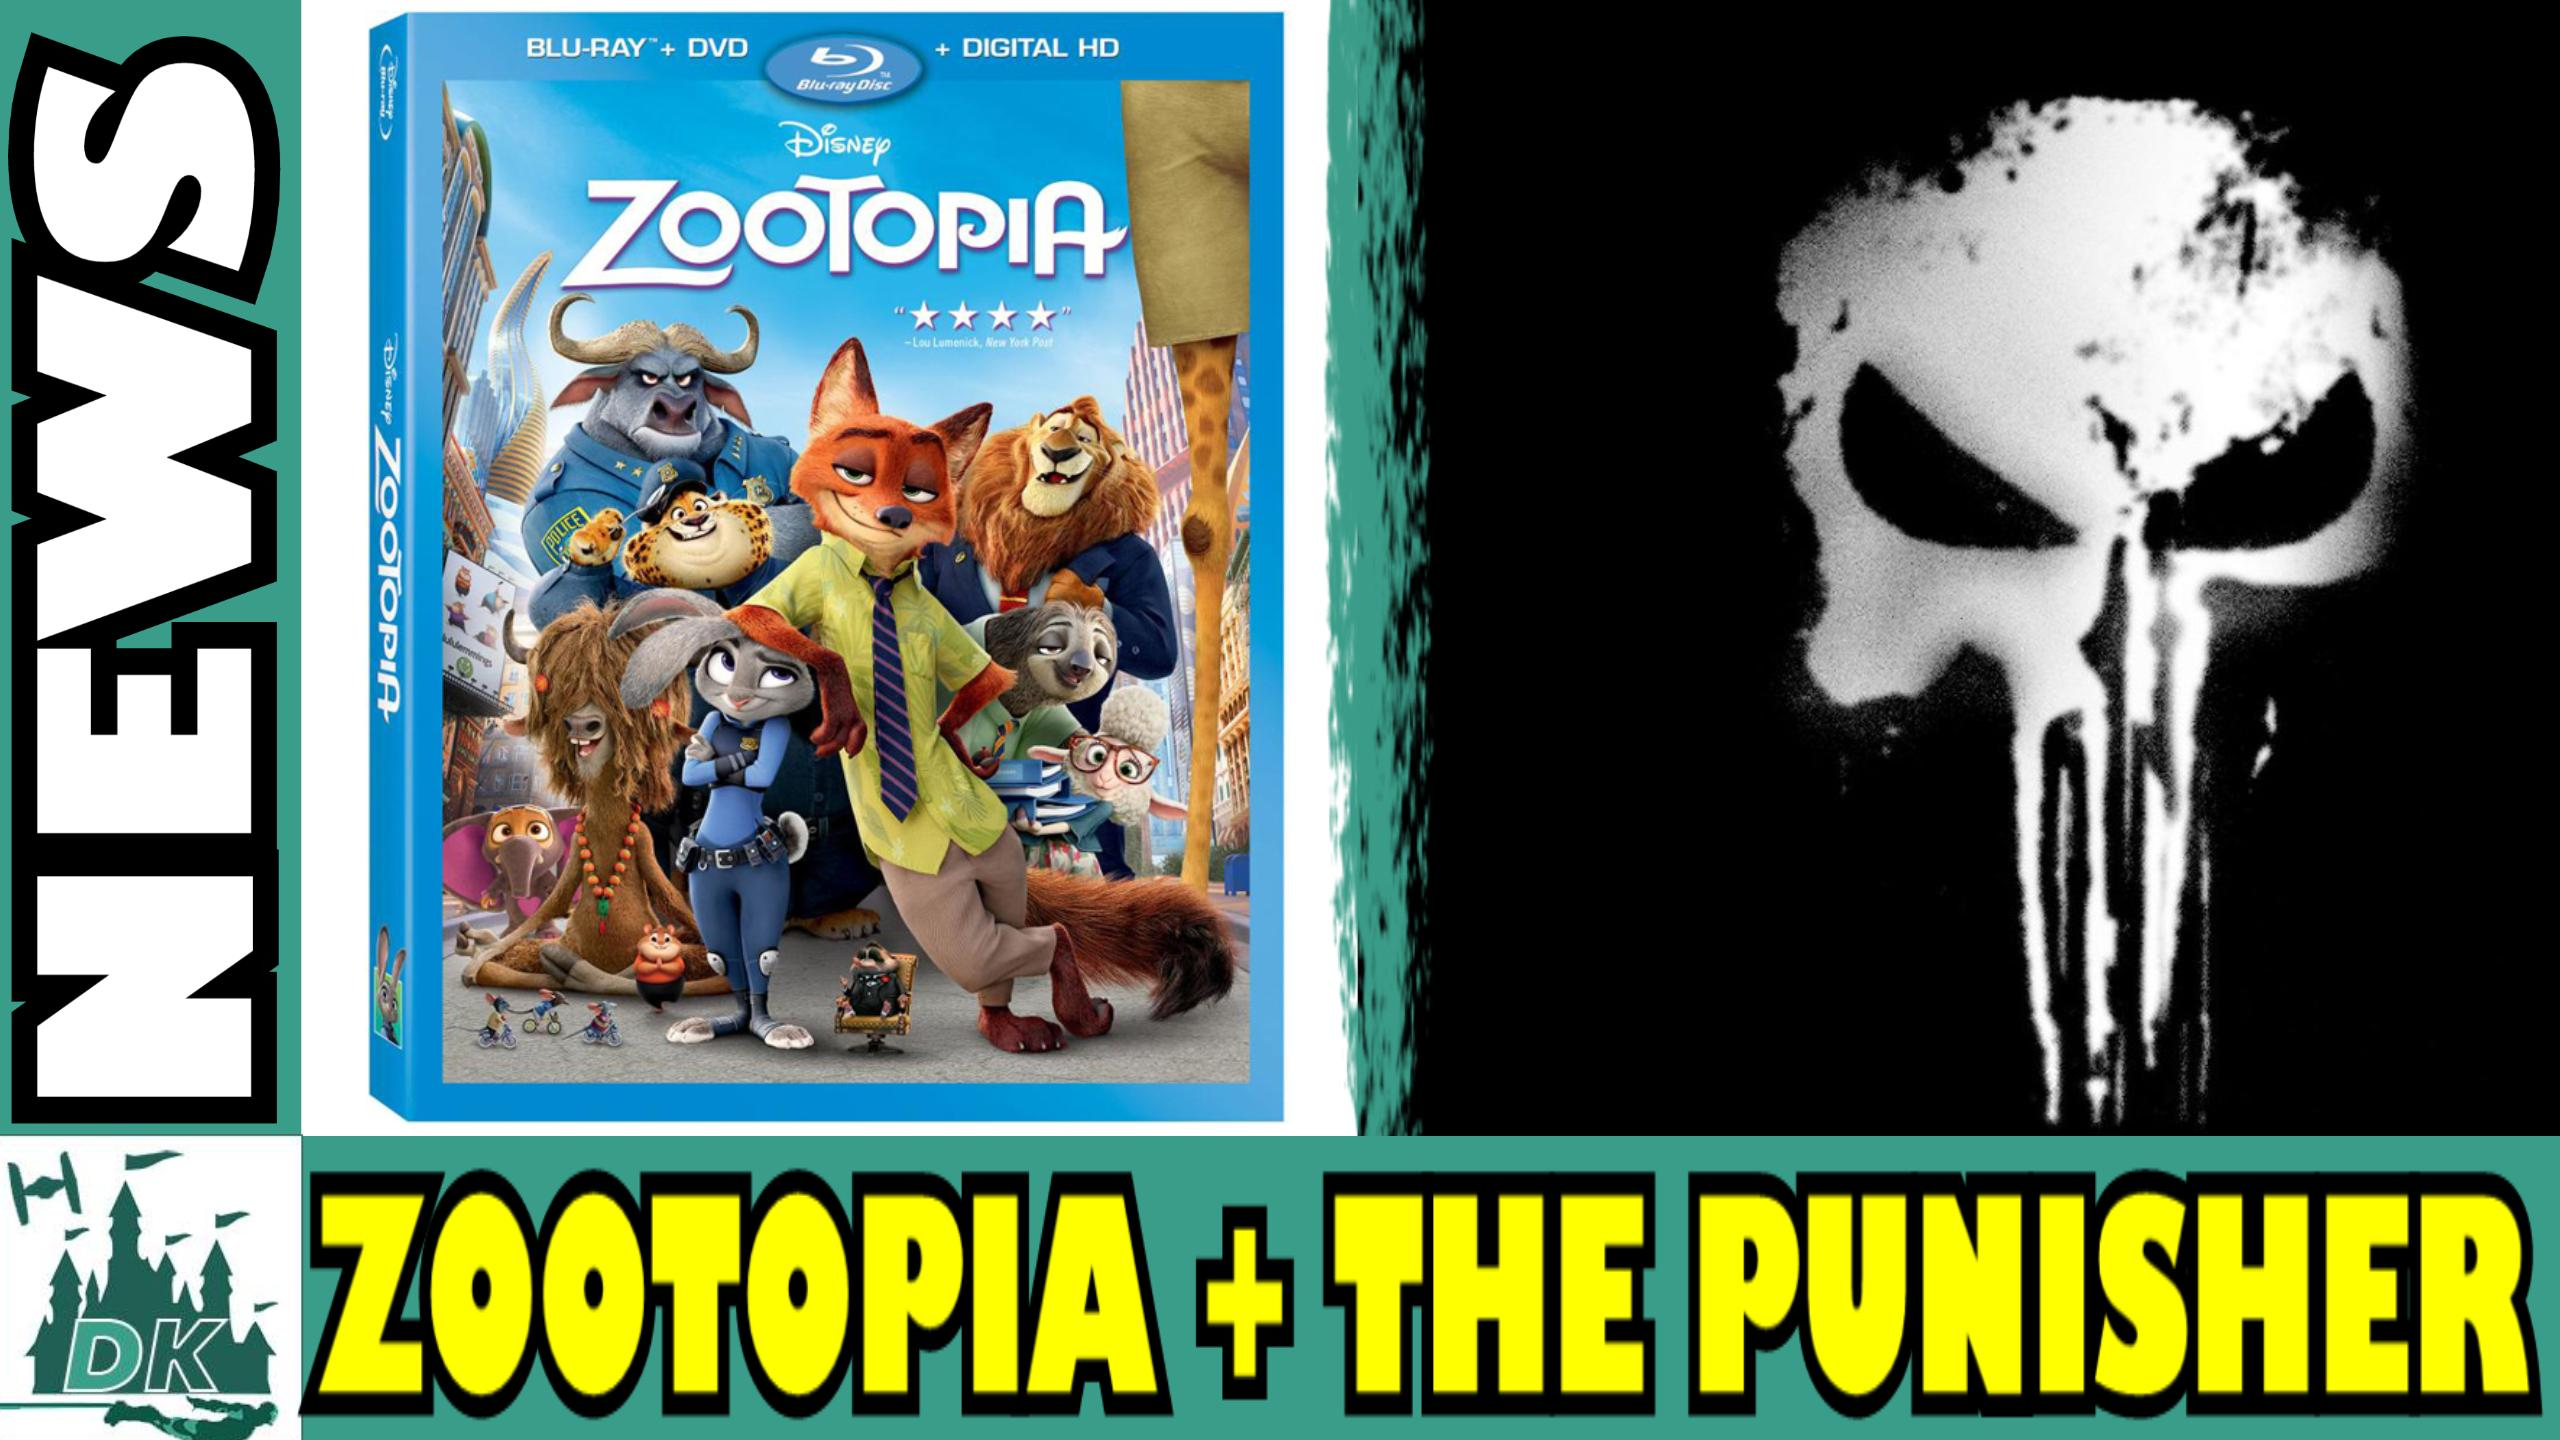 Zootopia Coming To Home Video + The Punisher Solo Netflix Series | News